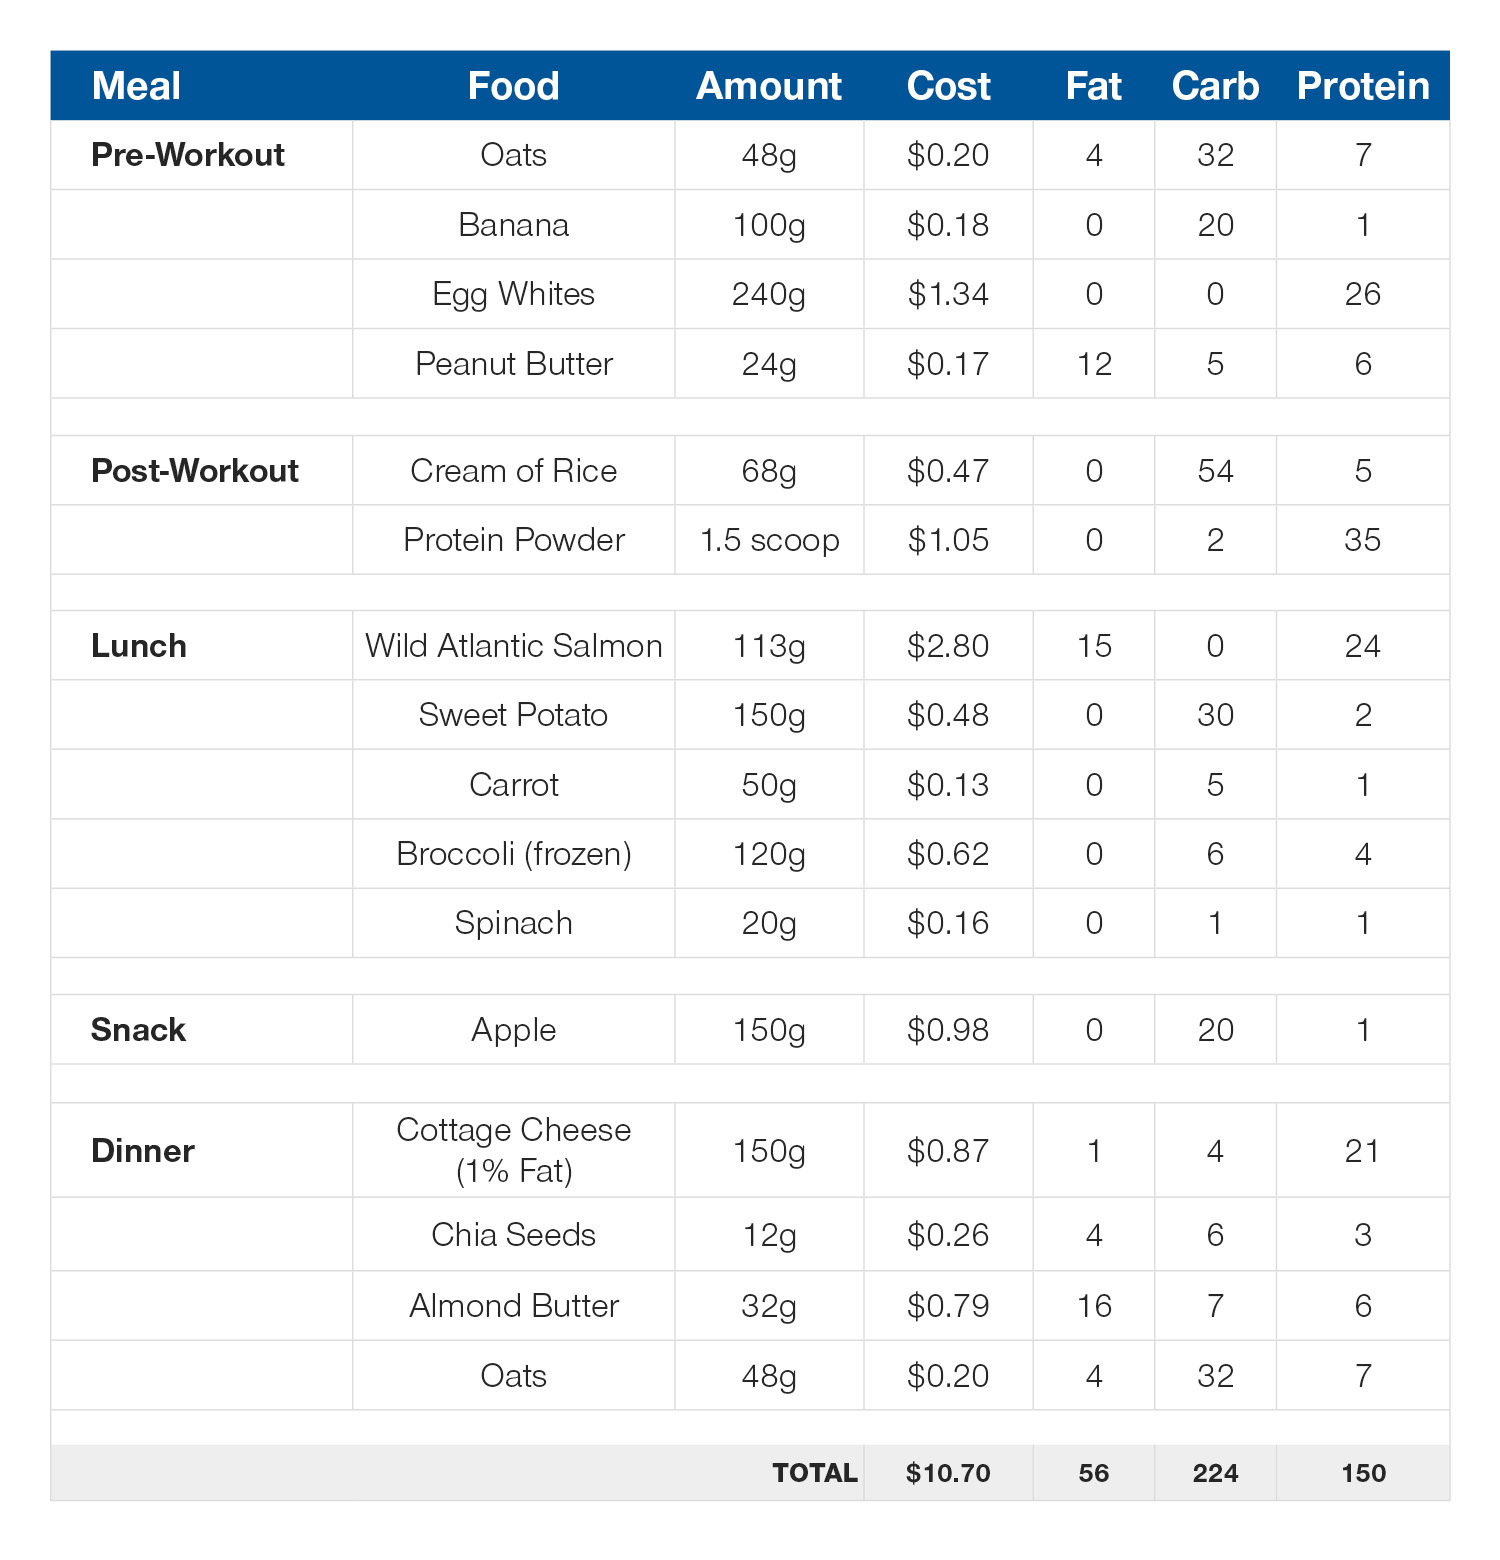 Daily meal plan: 150g protein, 56g fat, 225g carb